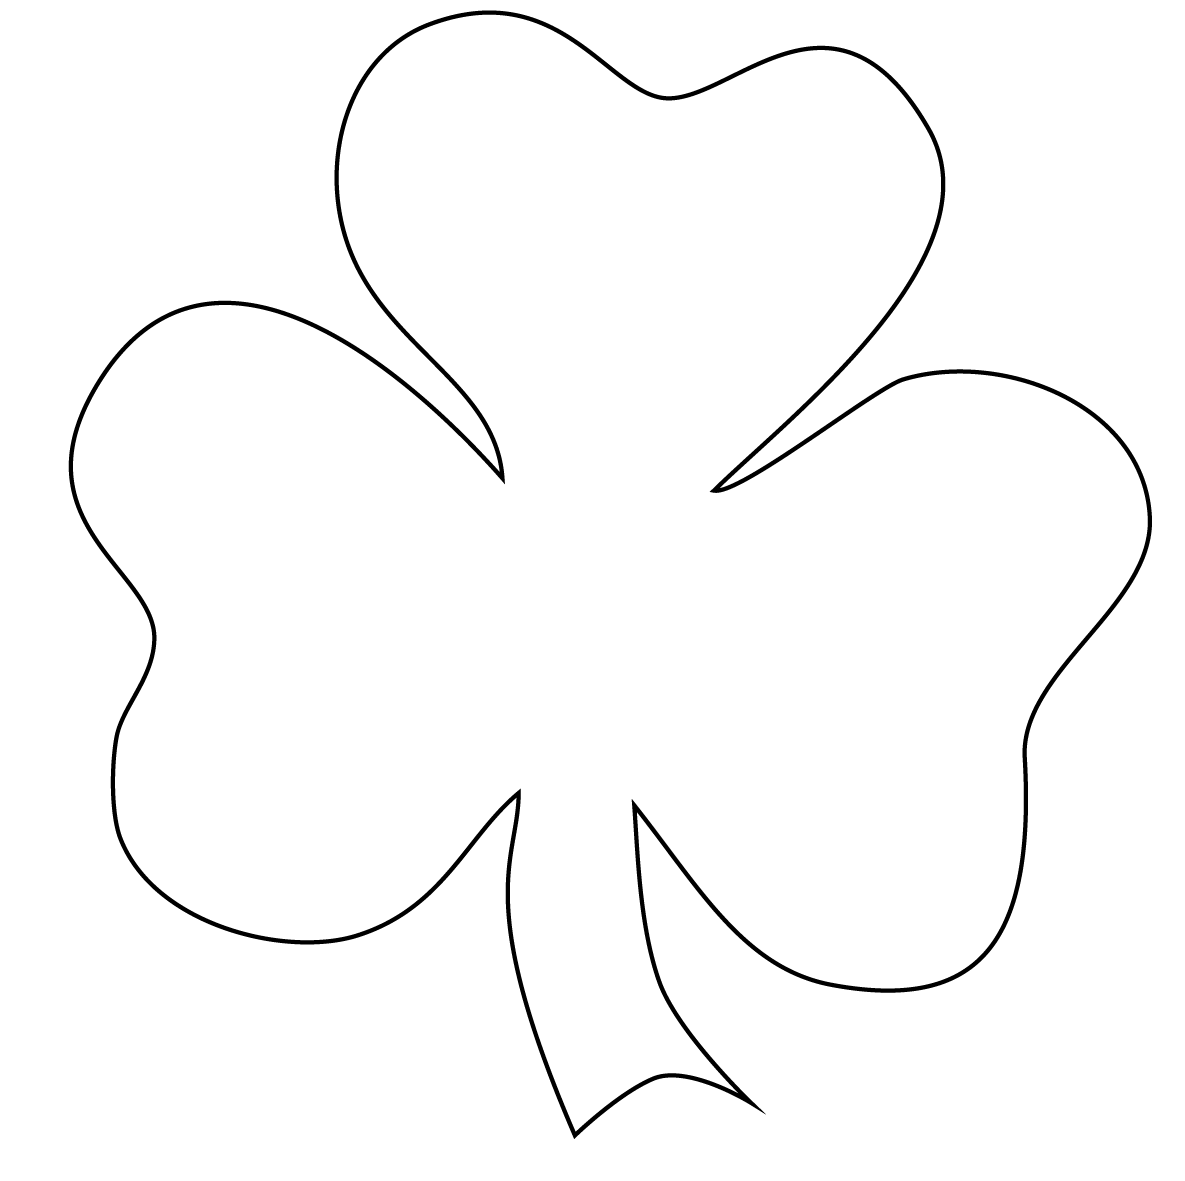 Free Outline Of Shamrock, Download Free Clip Art, Free Clip.